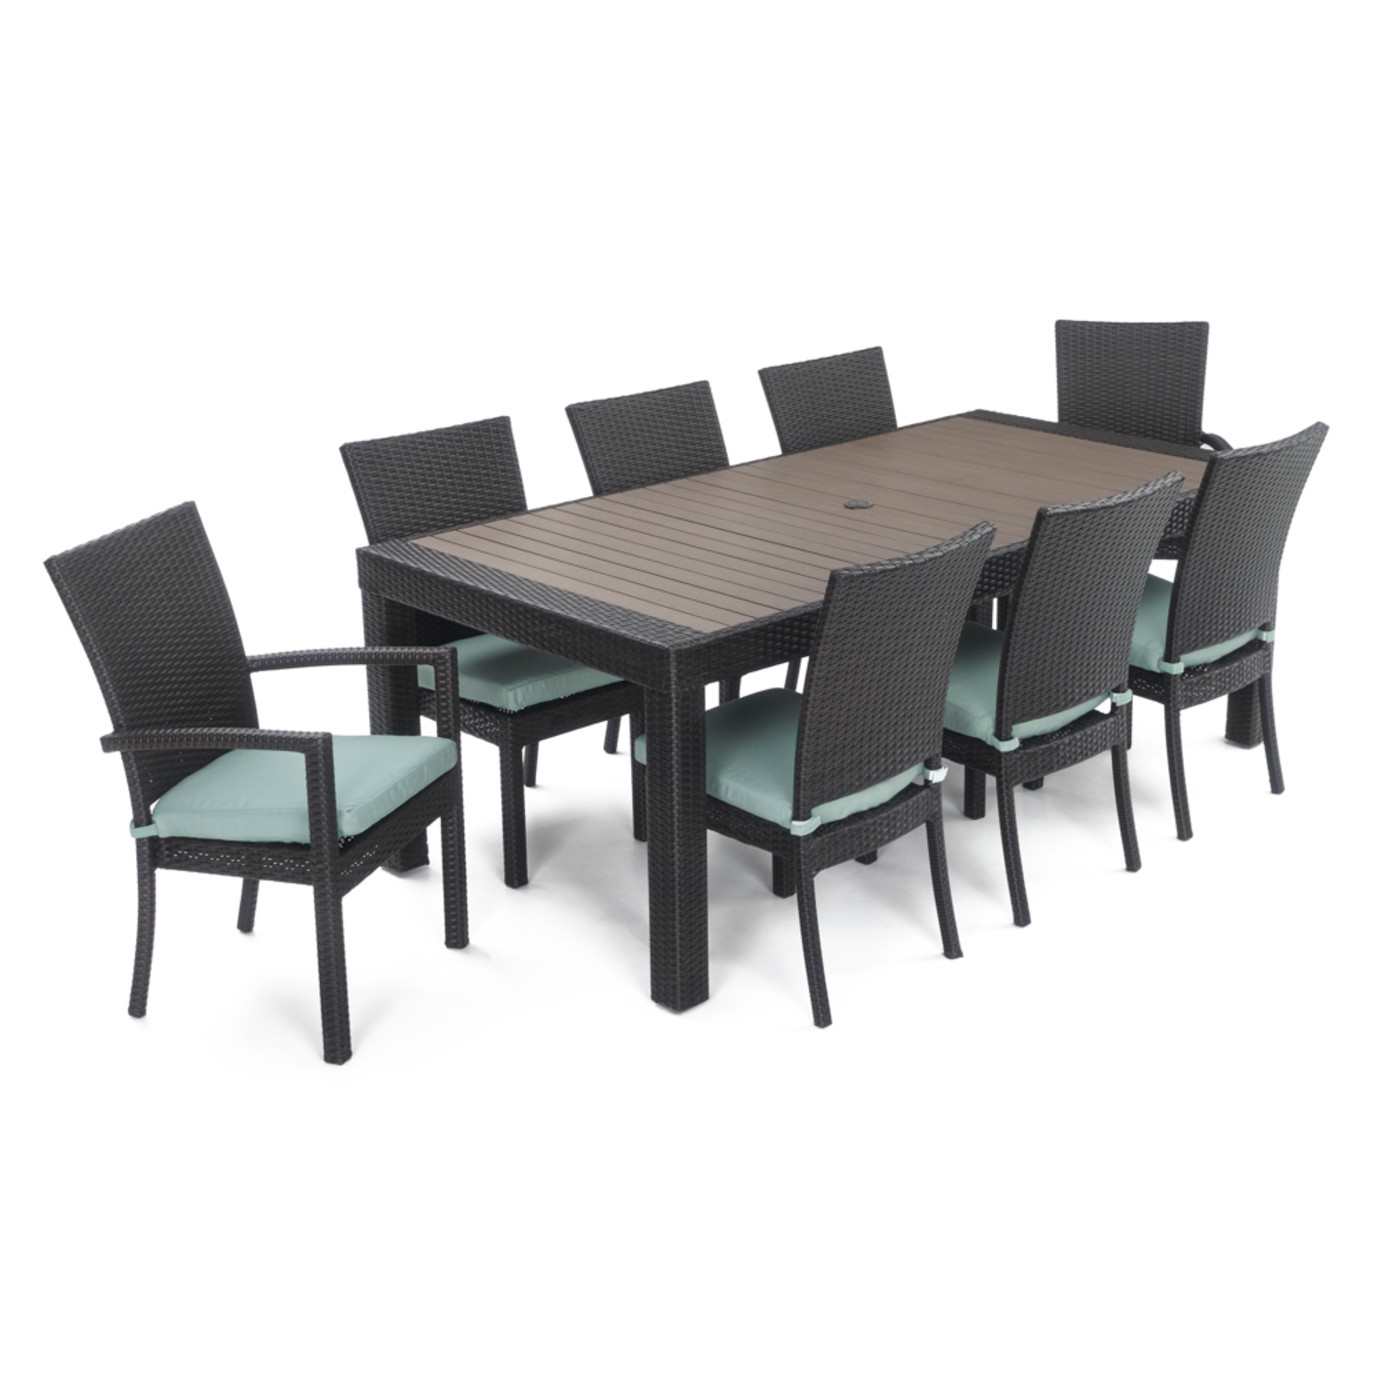 Deco™ 9pc Dining Set - Spa Blue